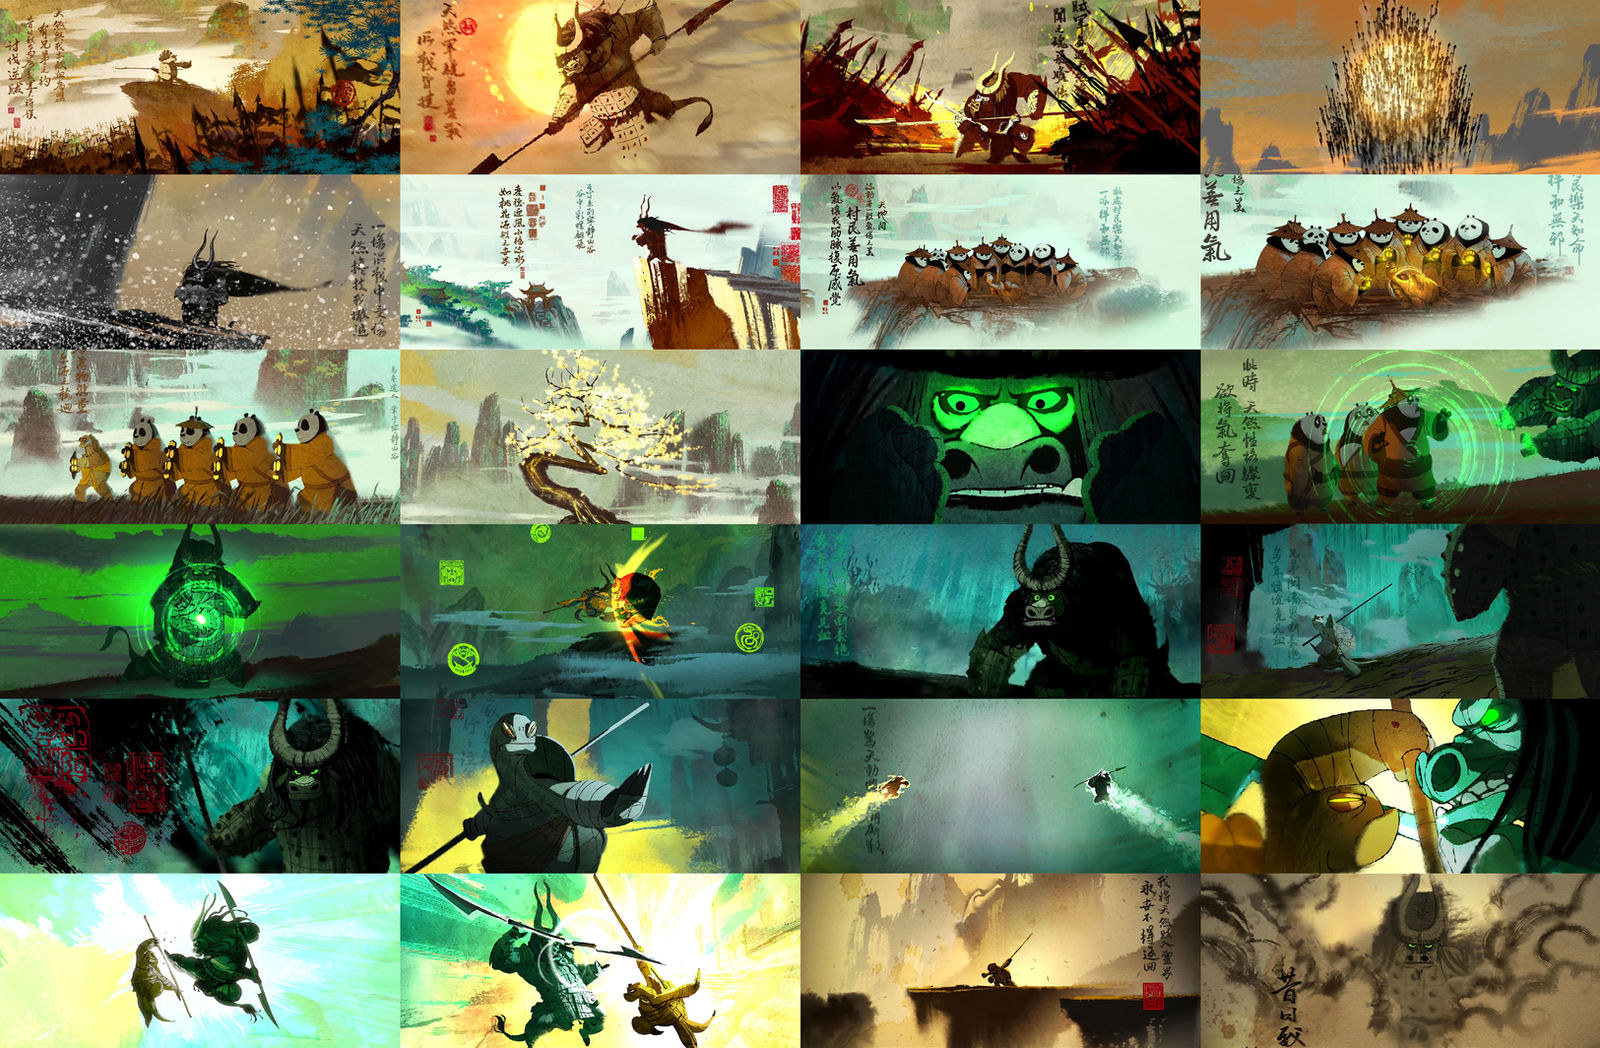 Kung Fu Panda 3 The Story Of Kai By Mnstrfrc On Deviantart